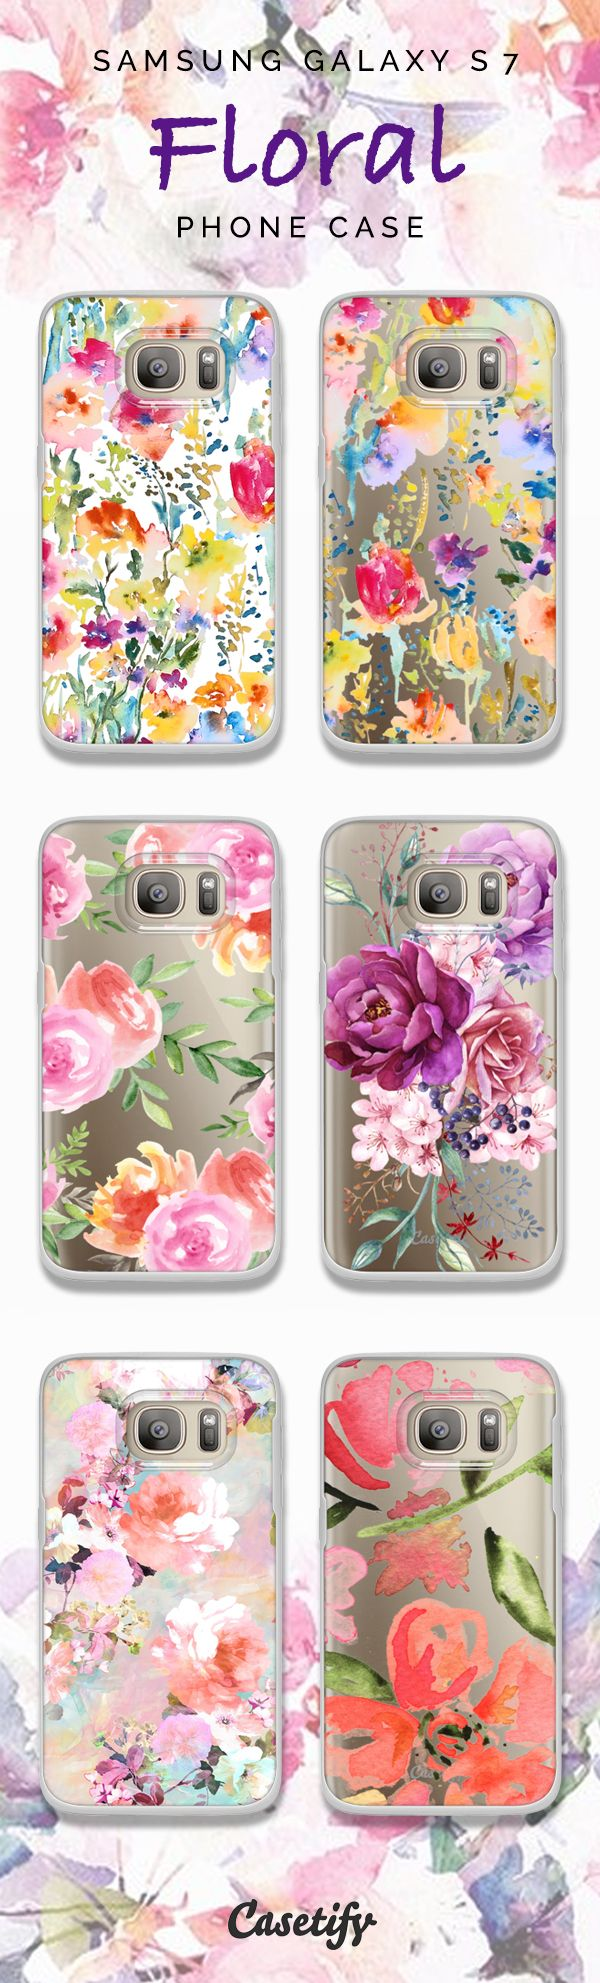 We design to inspire! Phone case designs are now available for Samsung Galaxy S7 & Galaxy S7 edge. Floral print never get out of style!Click through to see more phone case idea >>> https://www.casetify.com/collections/samsung-galaxy-s7 | @casetify